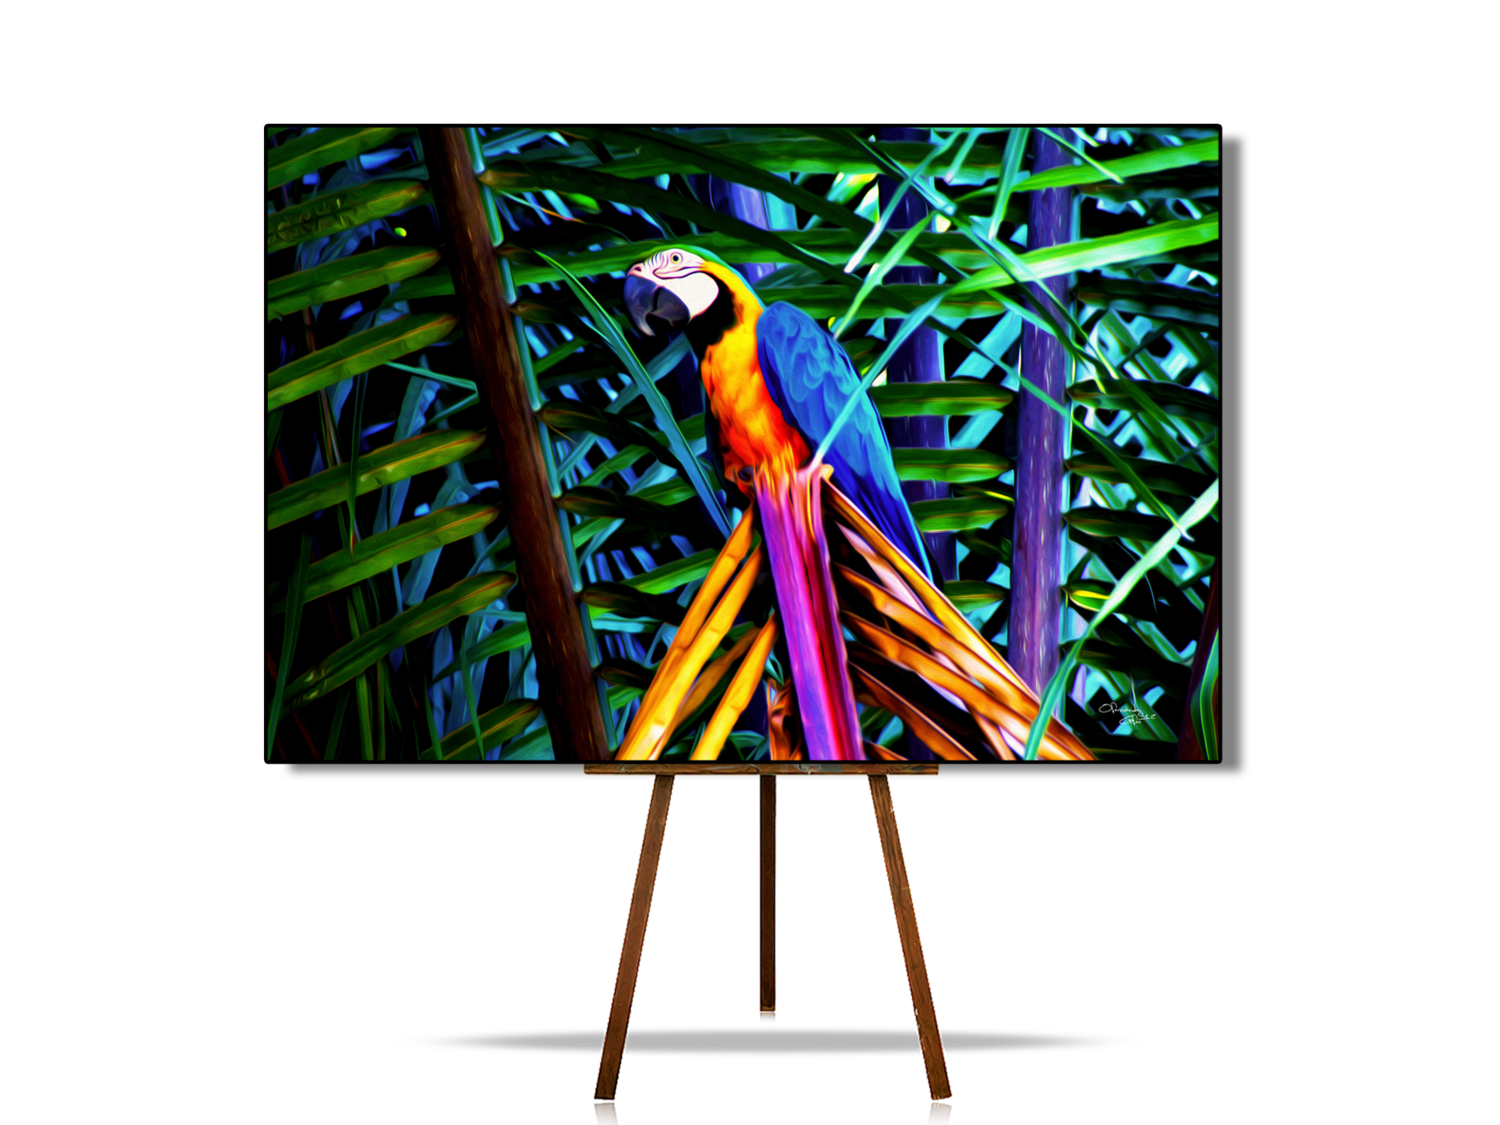 Blue and Yellow Macaw | Parrot | Original Artwork | Digital Painting | Canvas Print | Wall Art | Bird Lover Gift | Wonderful Colors and Texture